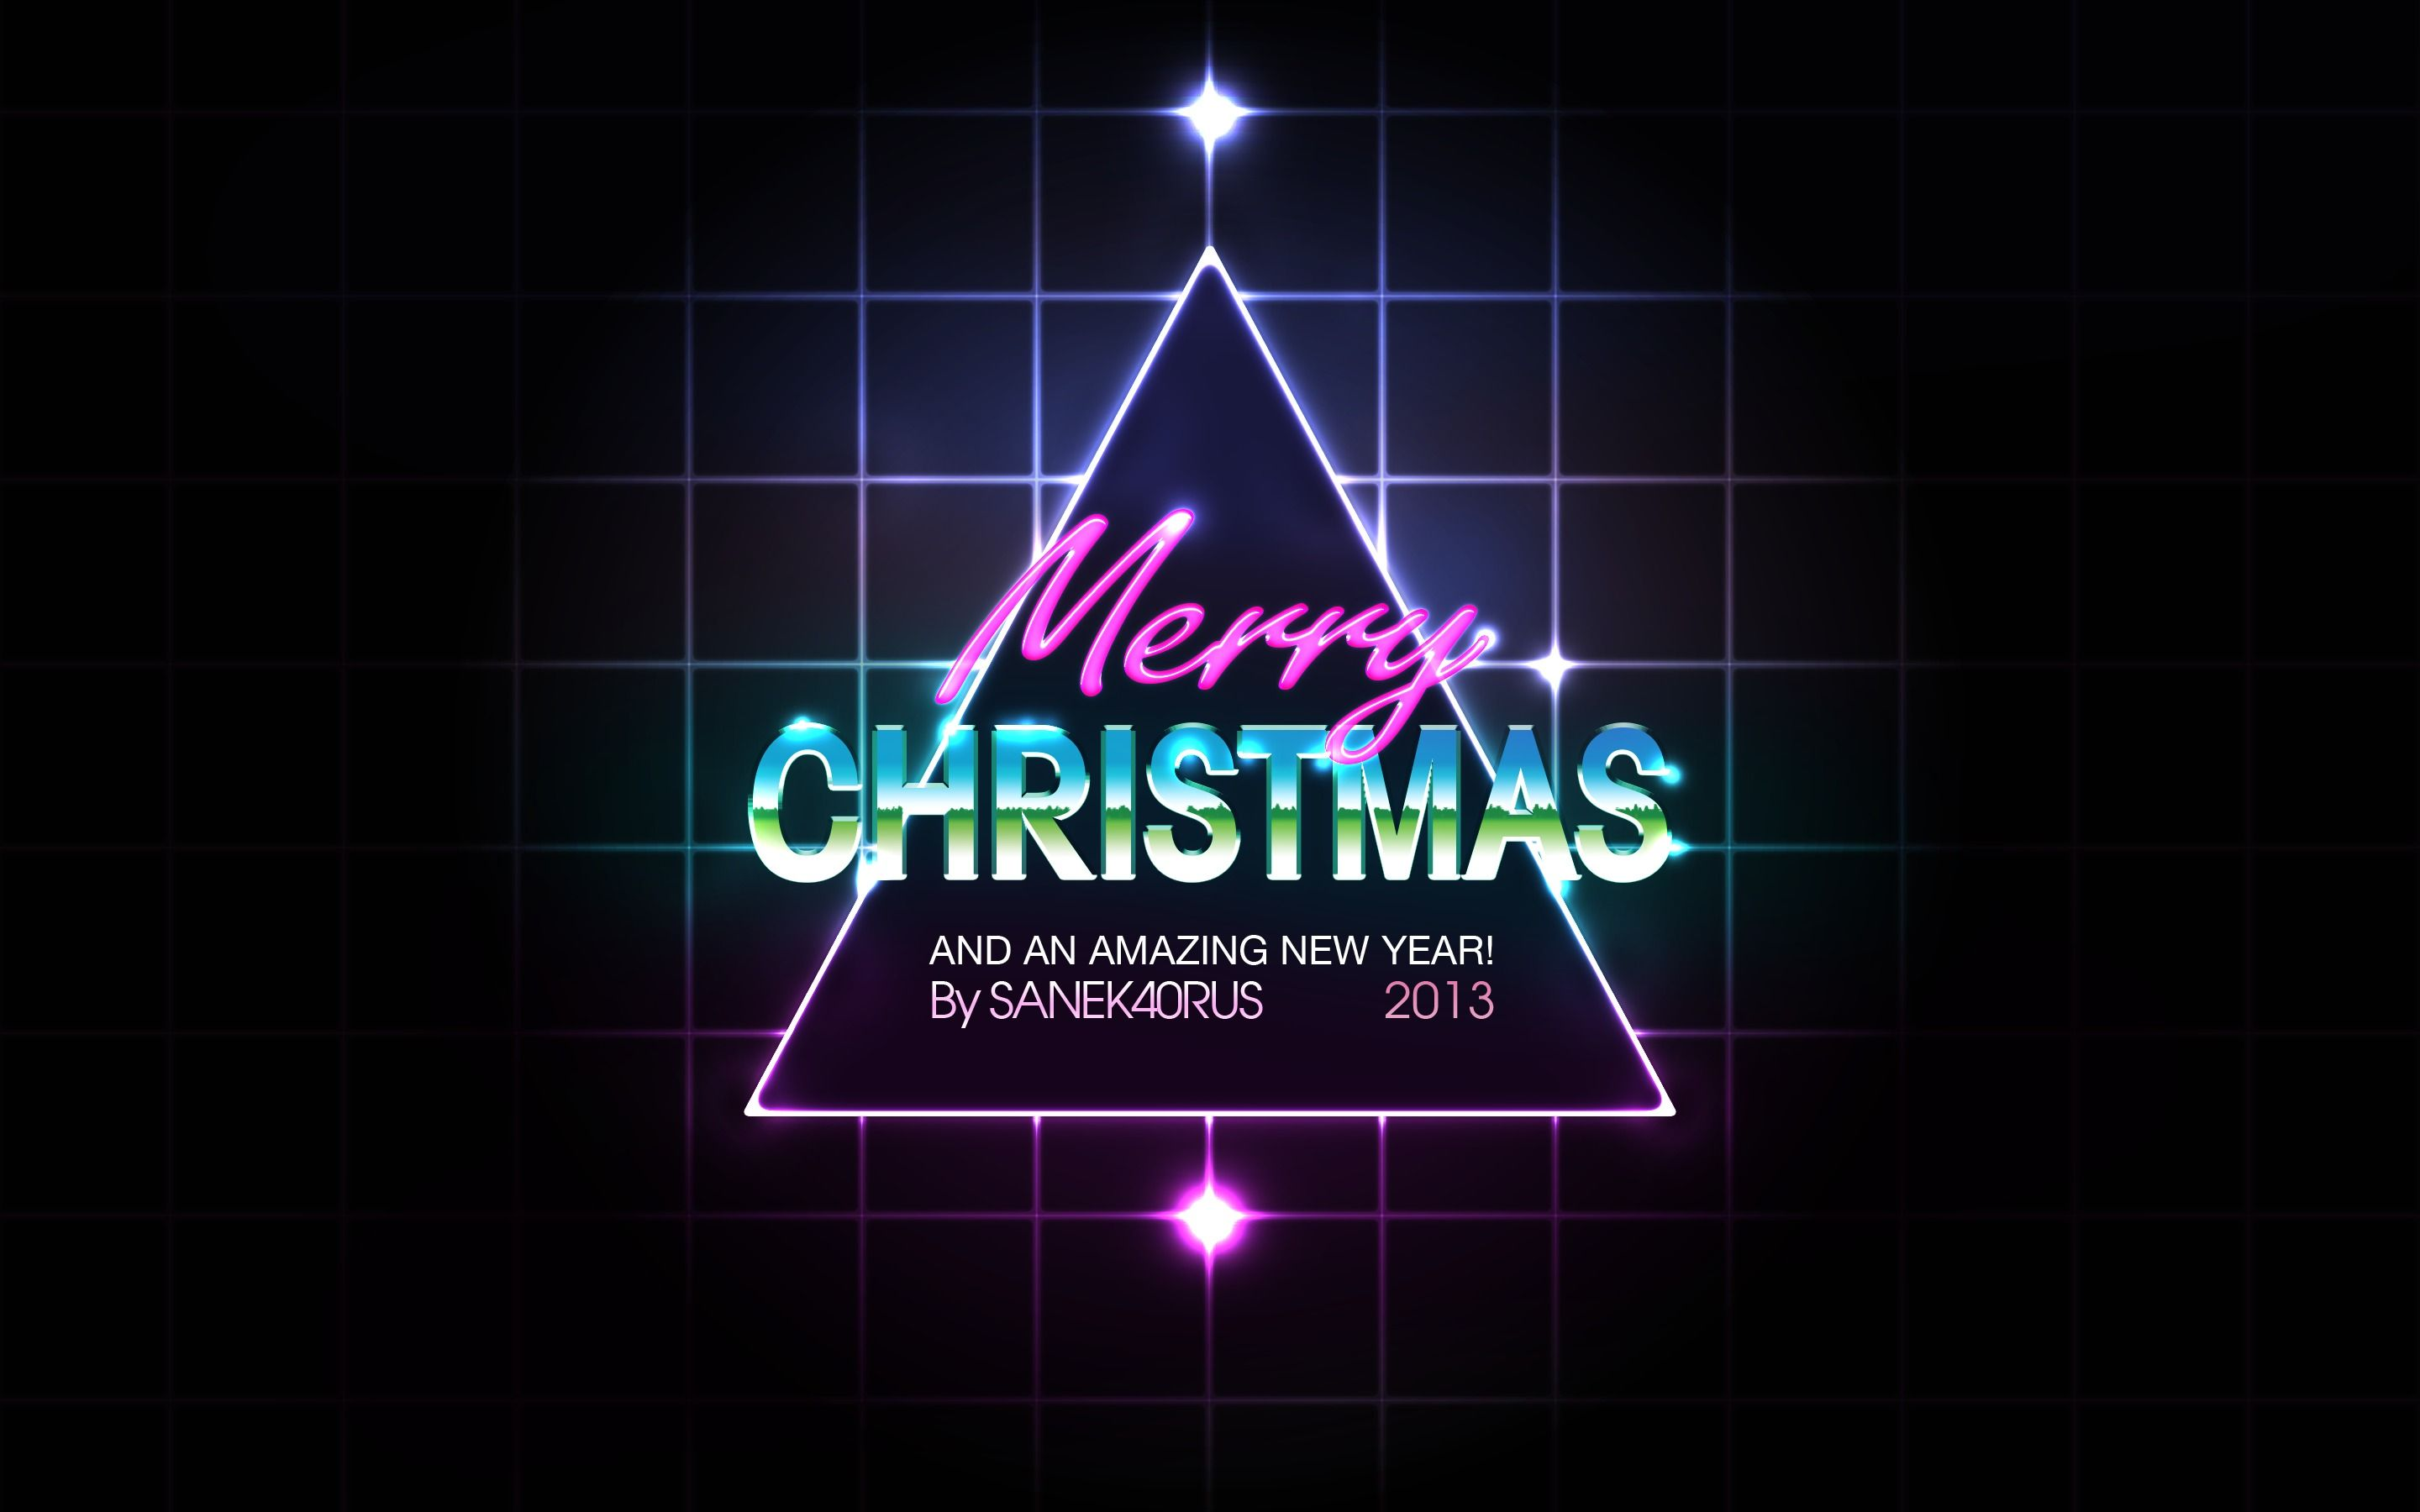 Retro 80s neon background l e273701ed067408ag 28801800 explore christmas artwork photoshop tutorial and more baditri Image collections